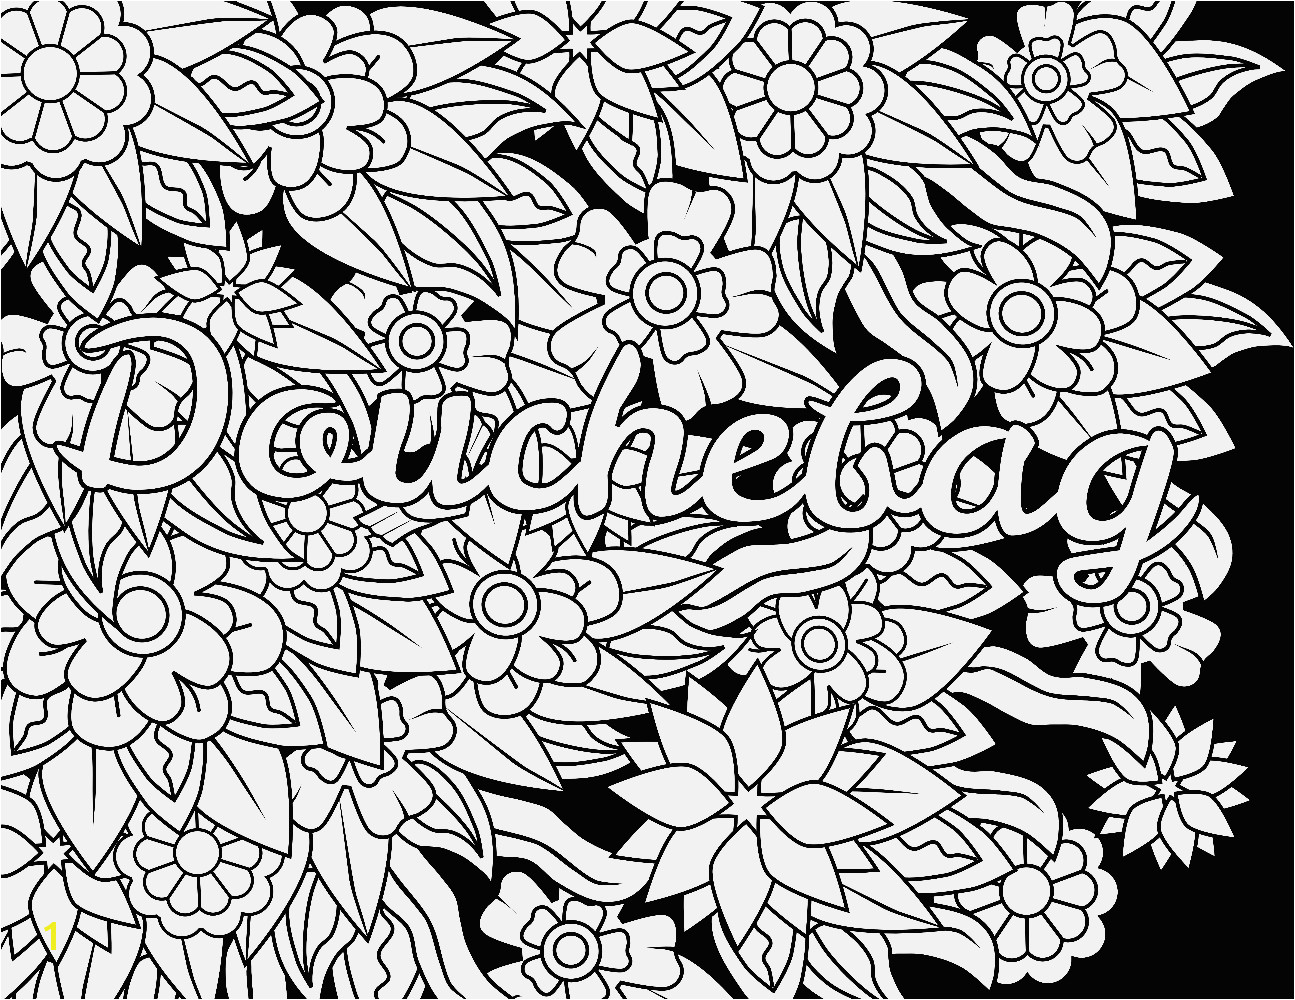 Easy Adult Coloring Pages Awesome S S Media Cache Ak0 Pinimg 736x 0d 71 C1 Free Coloring